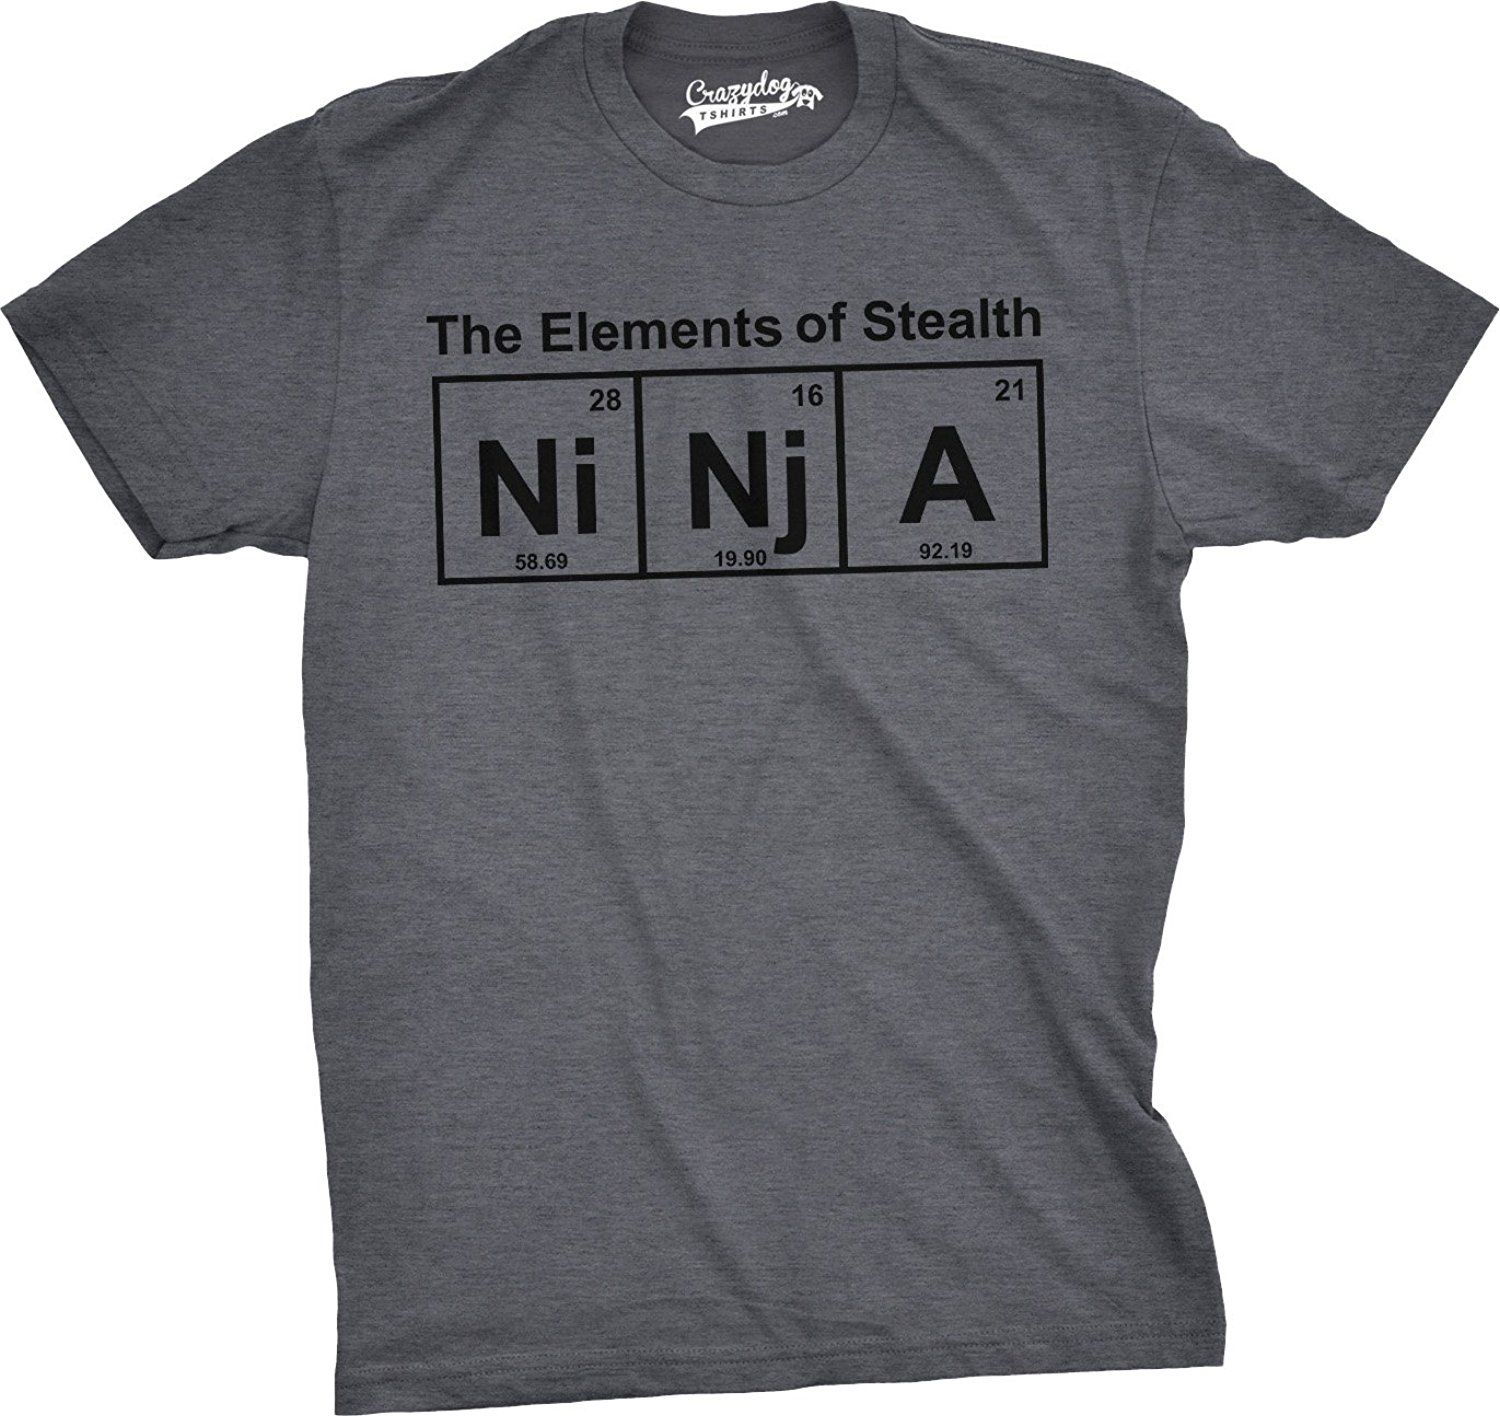 Sleeves Boy Cotton T Shir Mens Ninja Elementer T Shirt Funny Science Warrior Novelty Mens Graphic Nerdy Tees